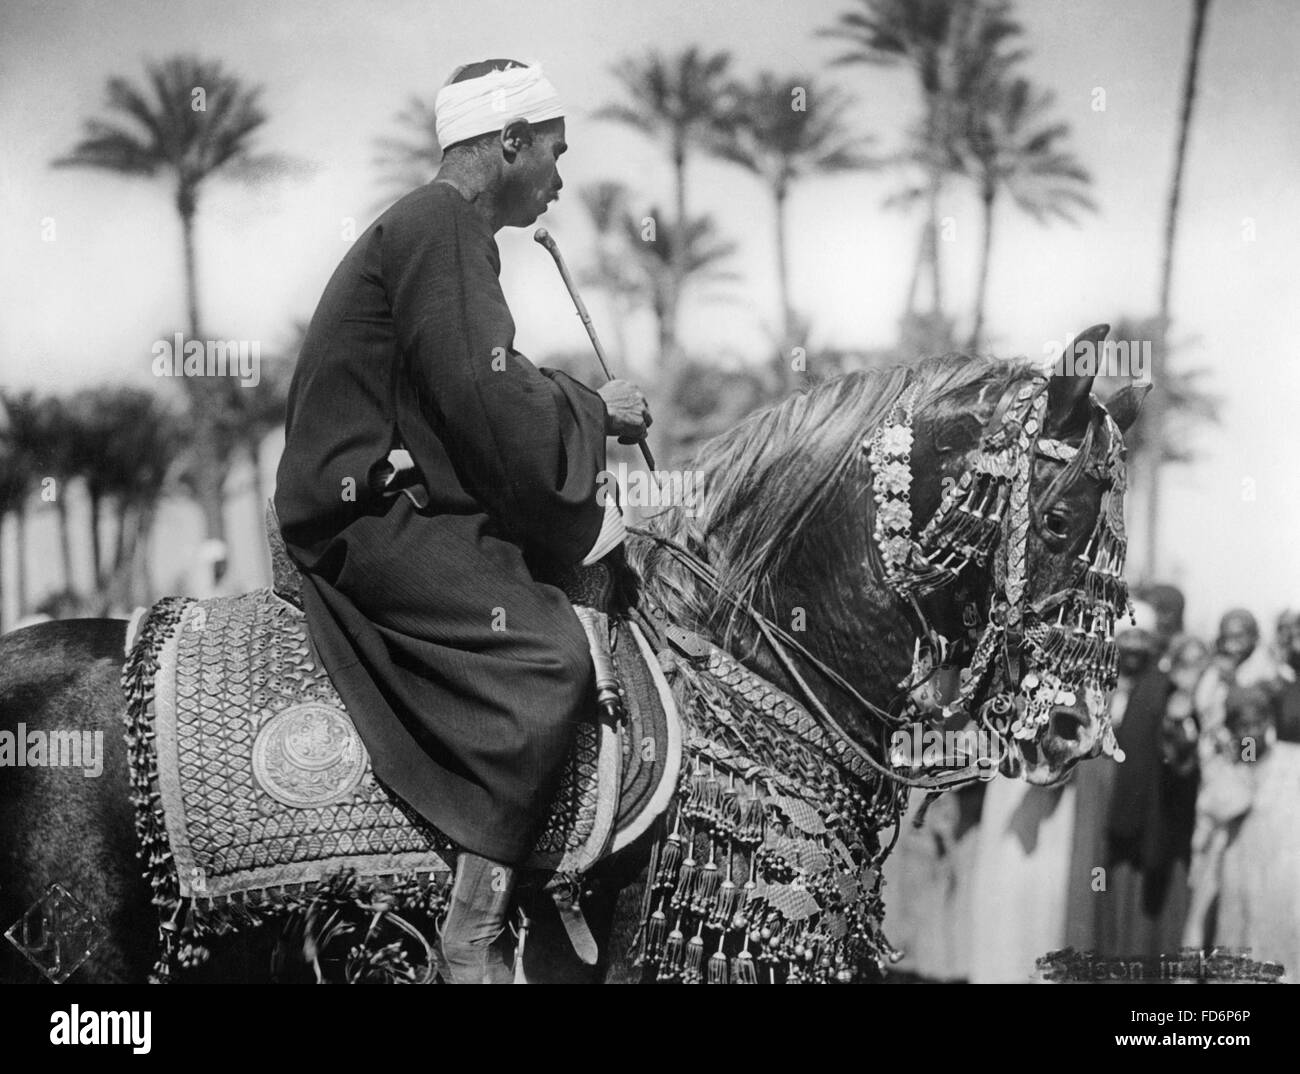 Man on a horse, 1930s - Stock Image